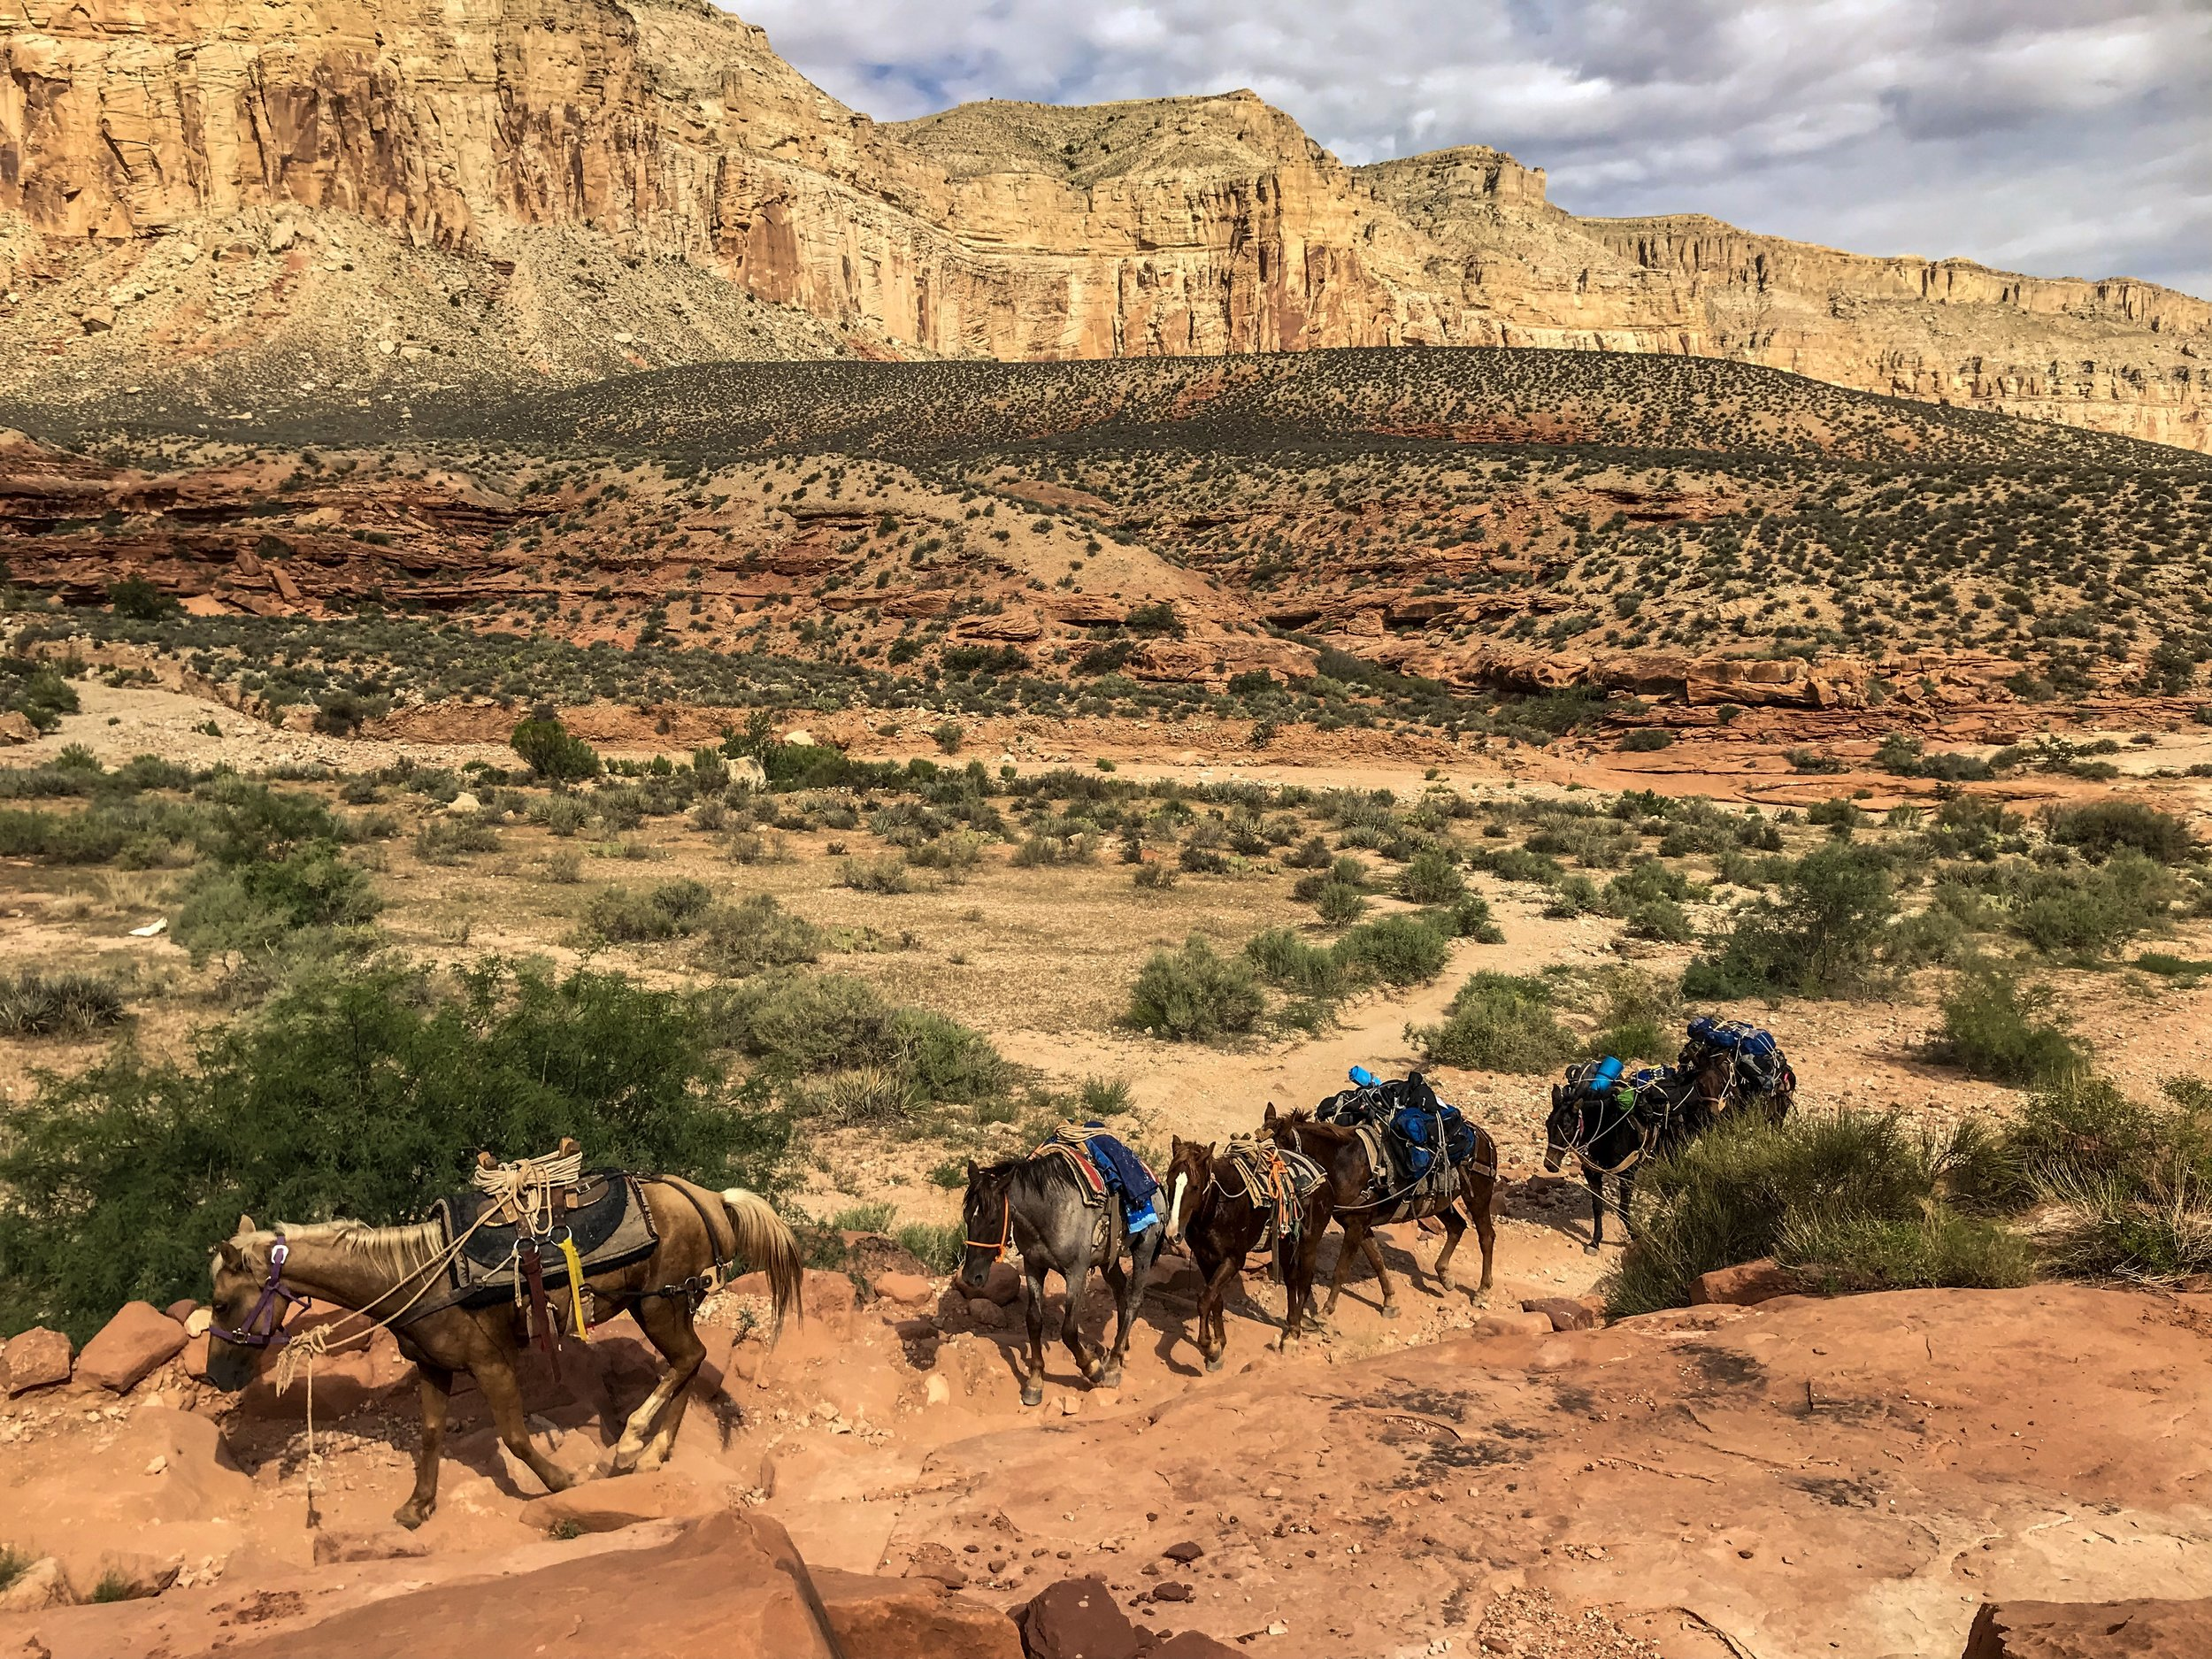 Horses at the base of the switchbacks in Havasu Canyon. Havasupai Indian Reservation